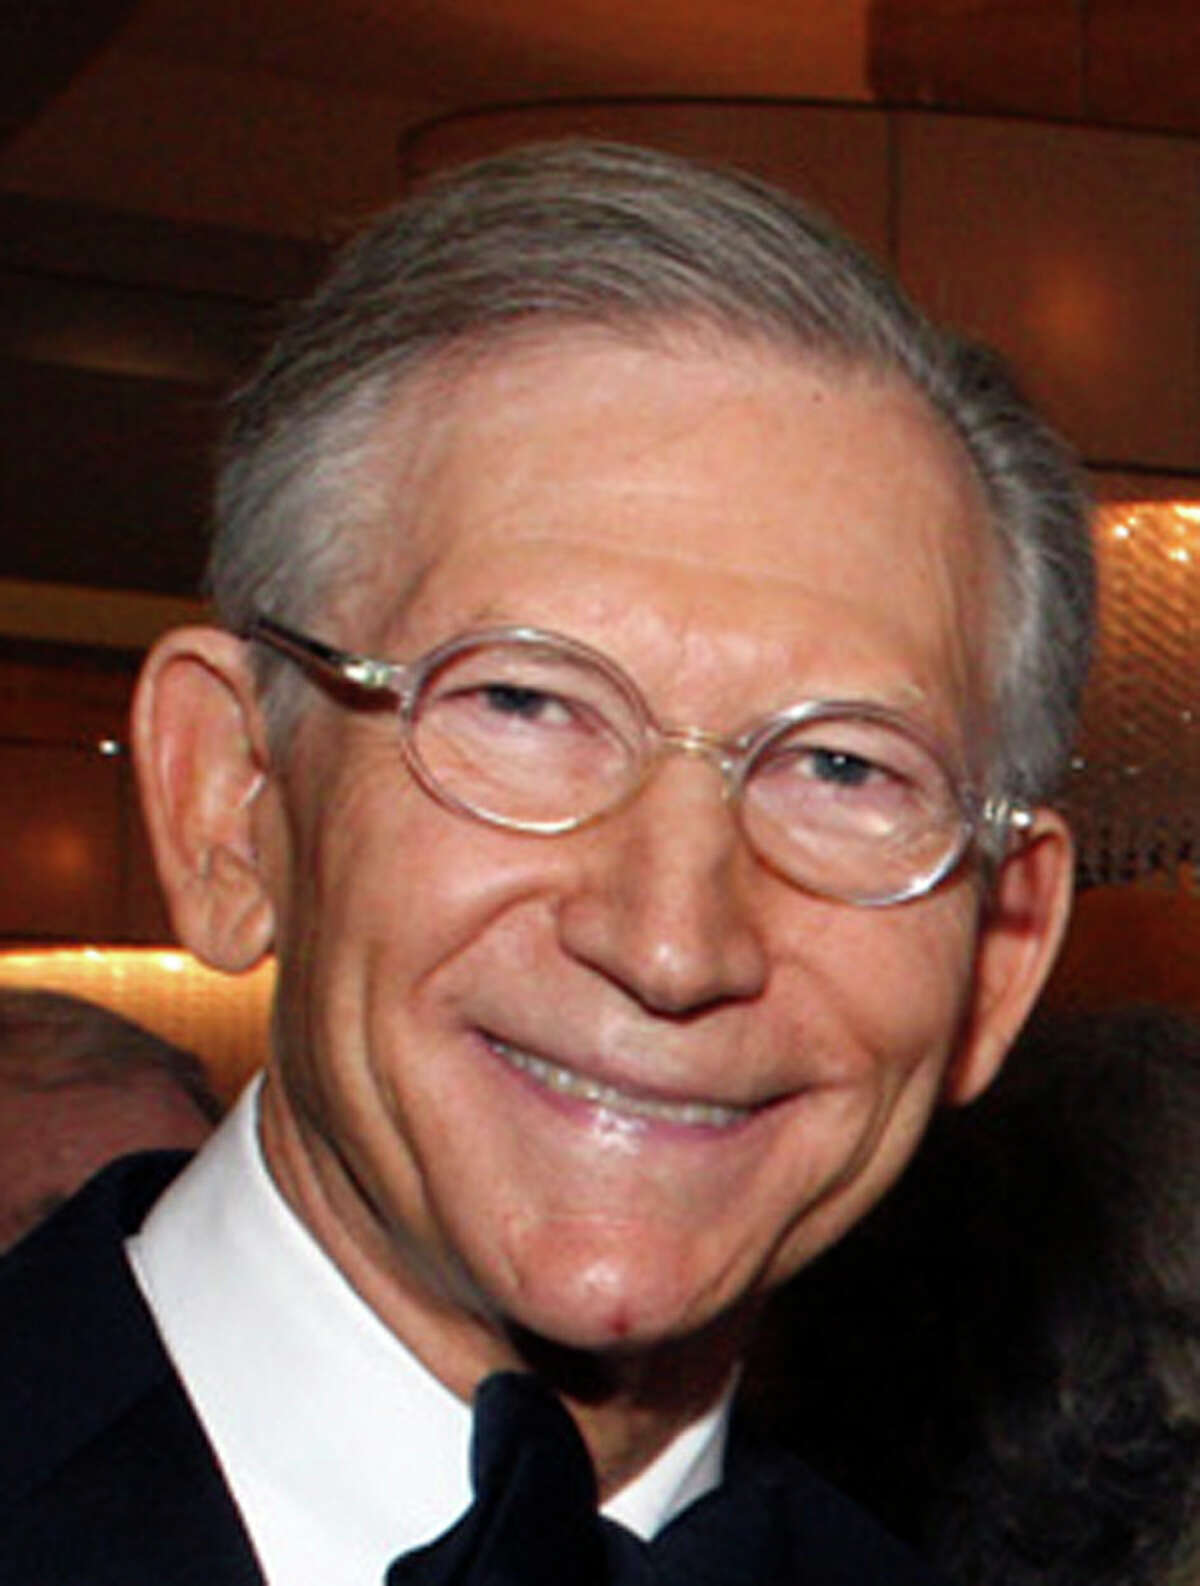 H-E-B Chairman and CEO Charles Butt and family has a net worth of $10.7 billion in 2016, according to Forbes.